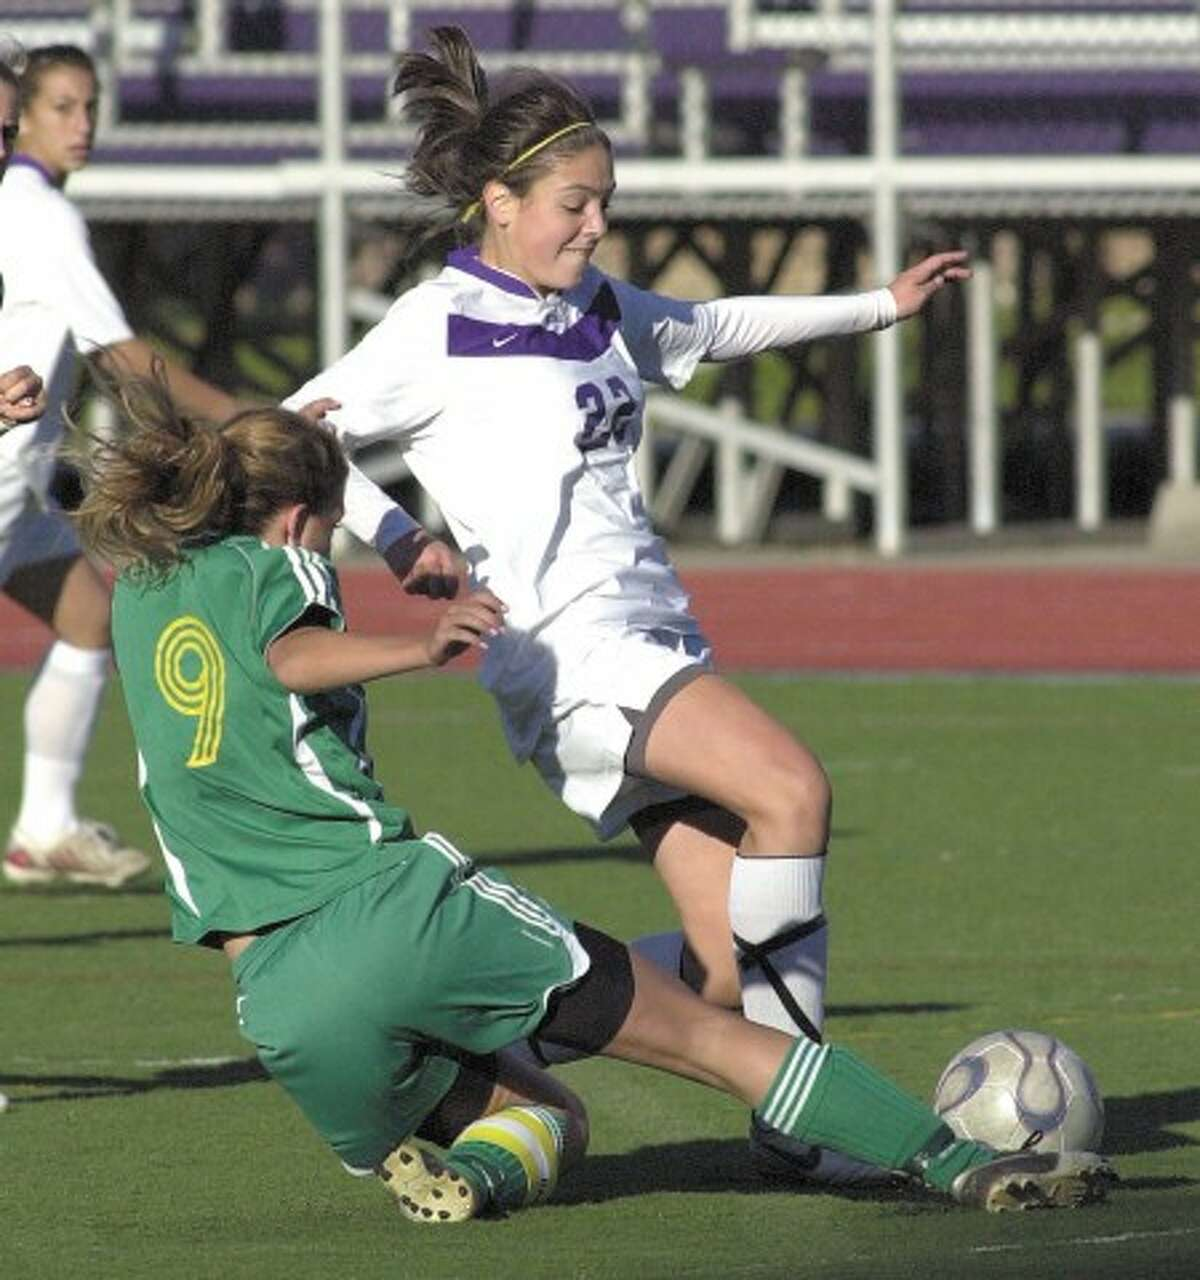 Photo by John Nash - Westhill''s Tessa Dunster, top, scored three goals to lead her team to the City Championship on Tuesday.